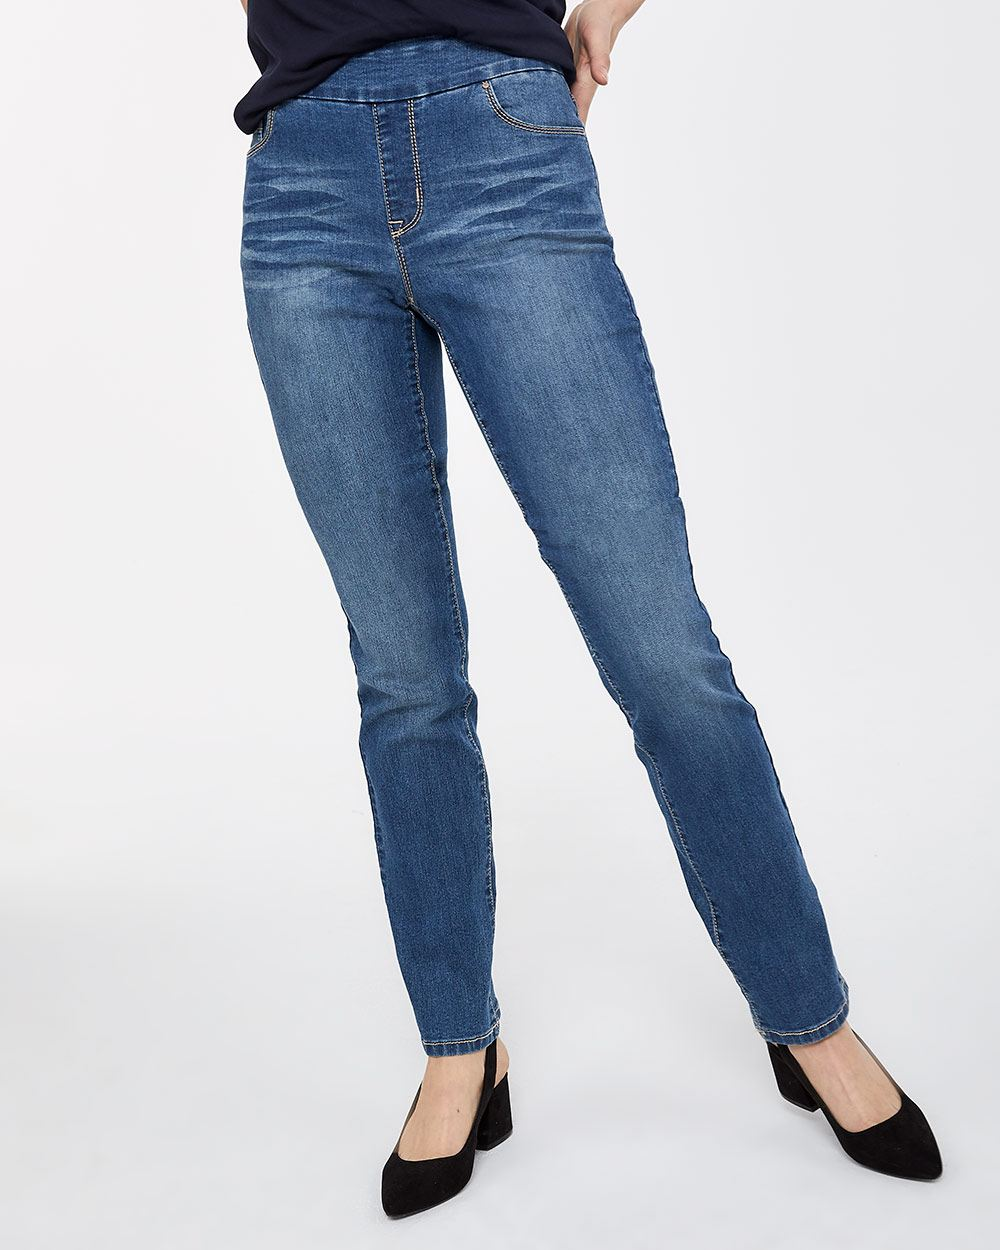 Straight Leg Pull On Jeans The Original Comfort - Petite